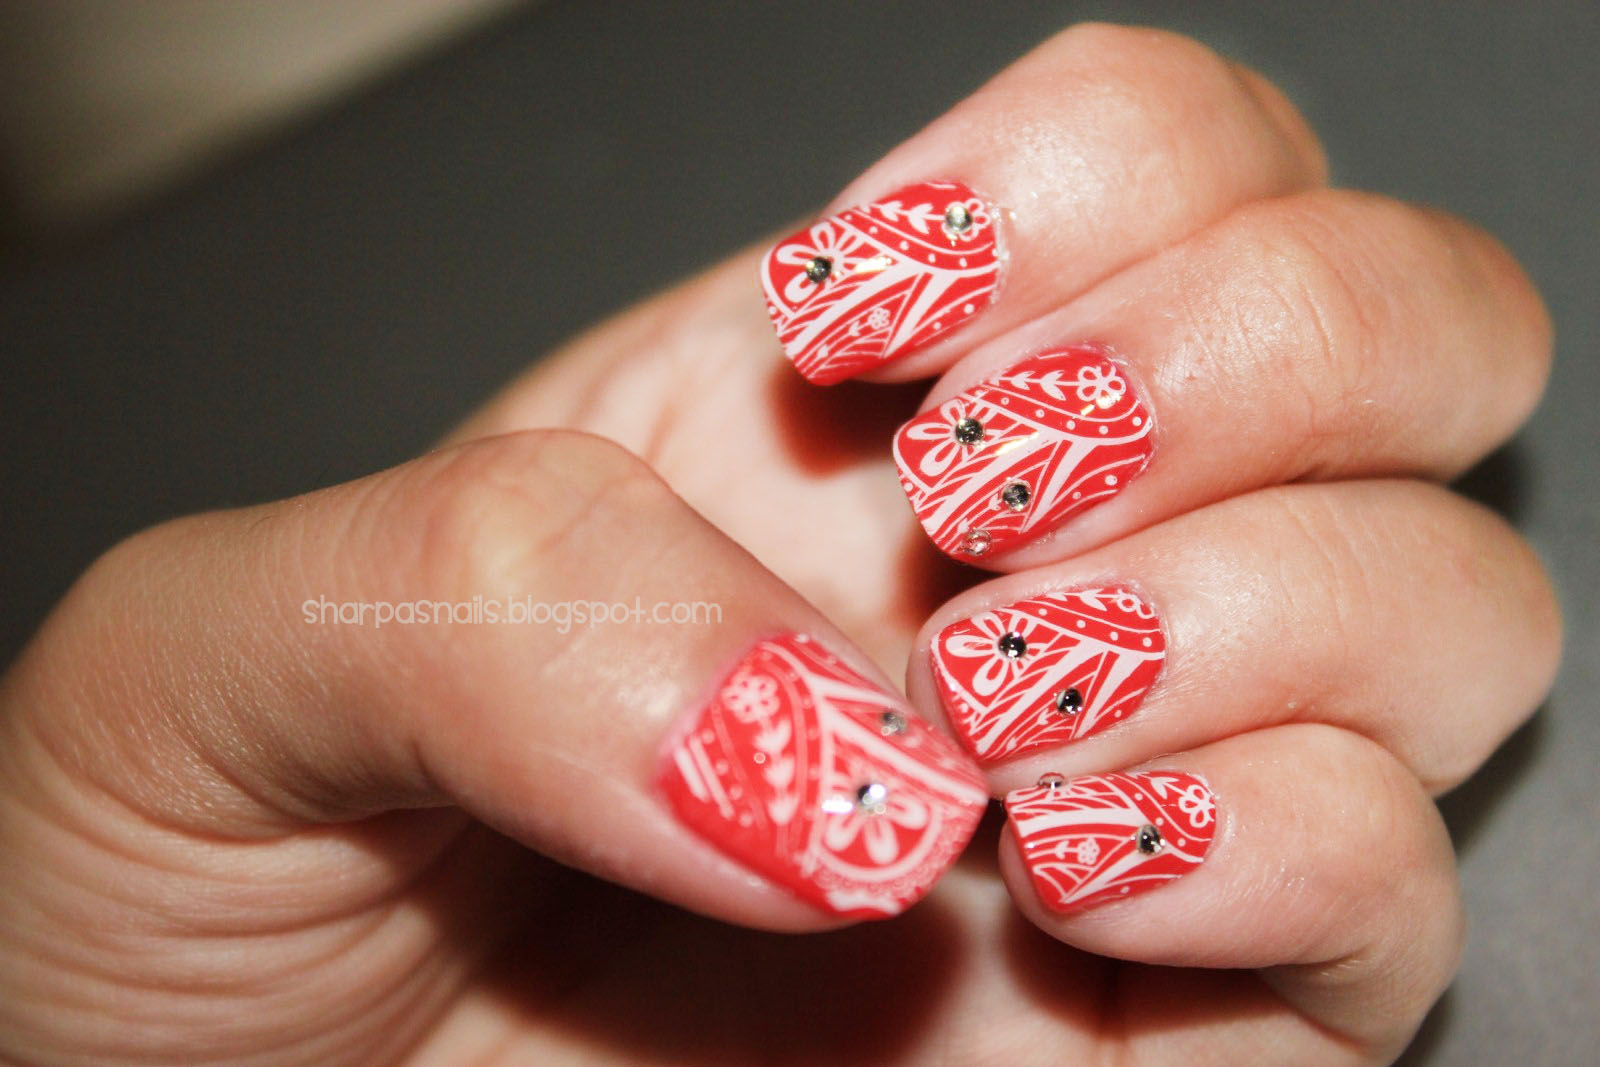 Sharp As Nails (A Nail Art Blog): When In Doubt Wear Red